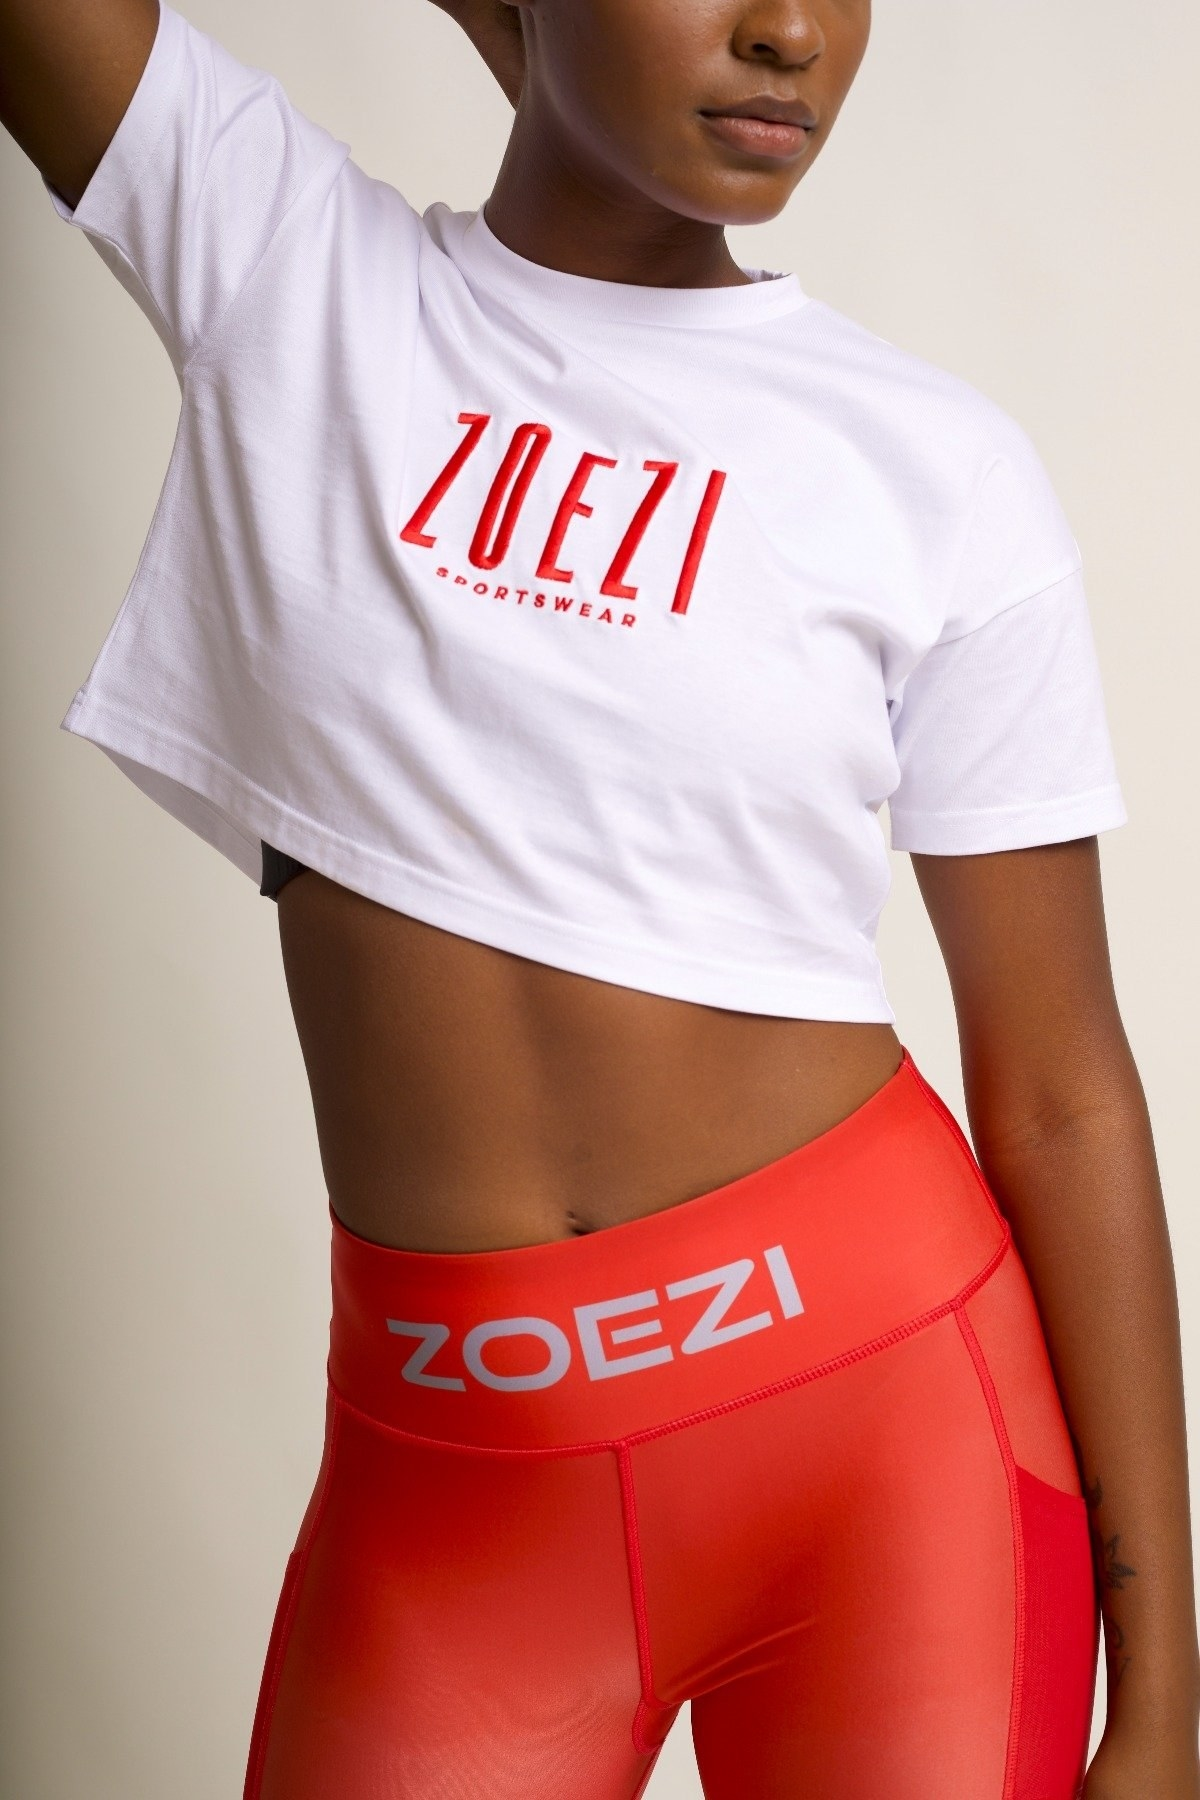 """model in white cropped tee that says """"zoezi sportswear"""" on the front"""